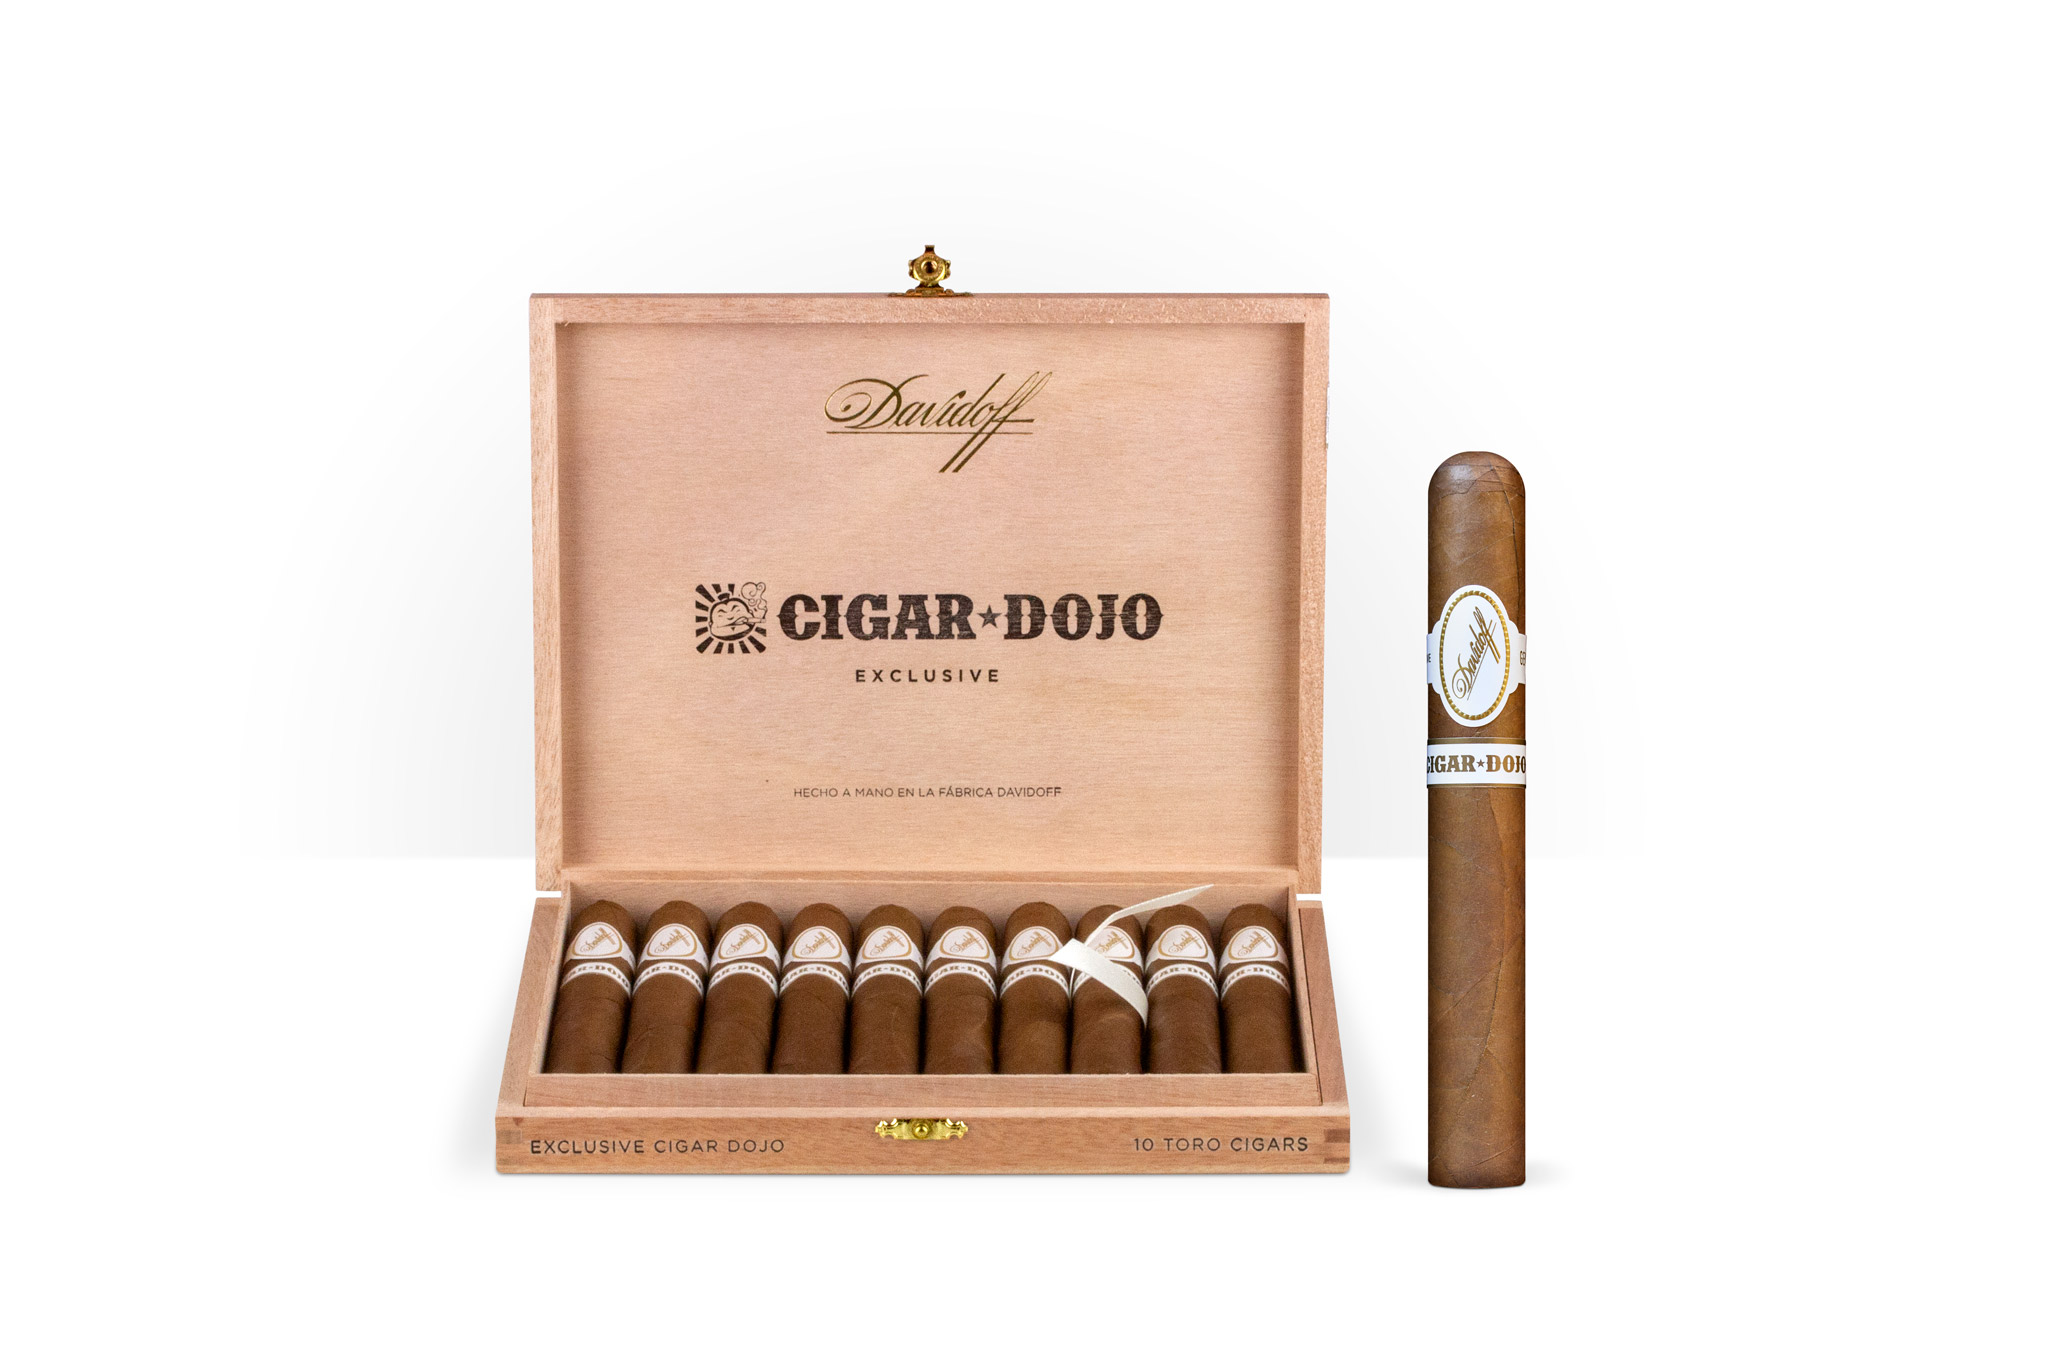 Davidoff Cigar Dojo Exclusive 2018 cigar presentation